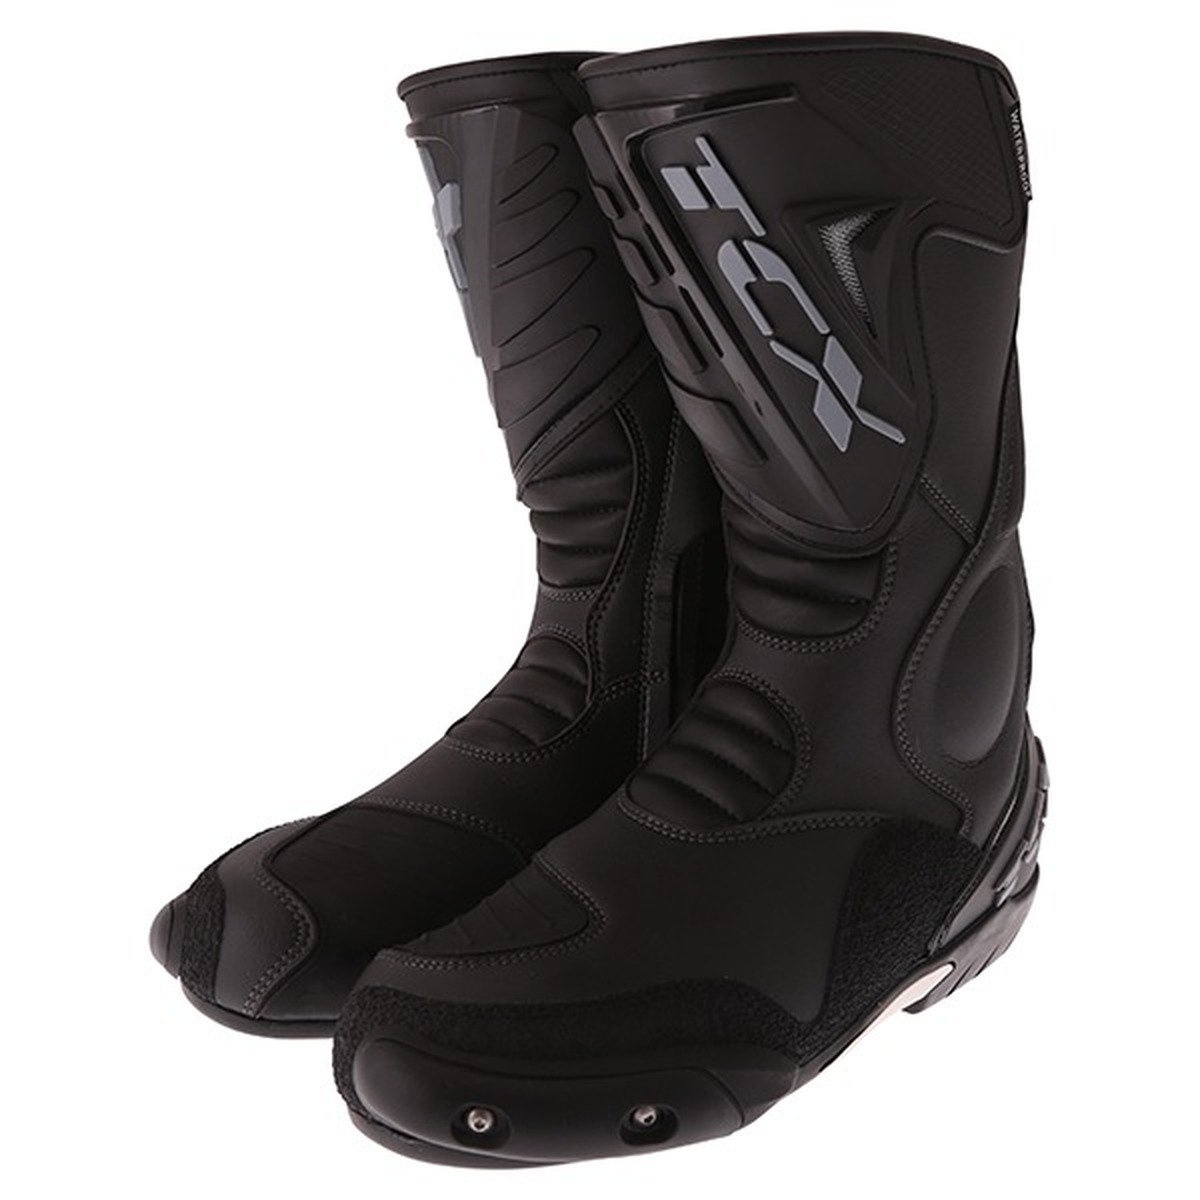 TCX SS Sport WP Boots in Black